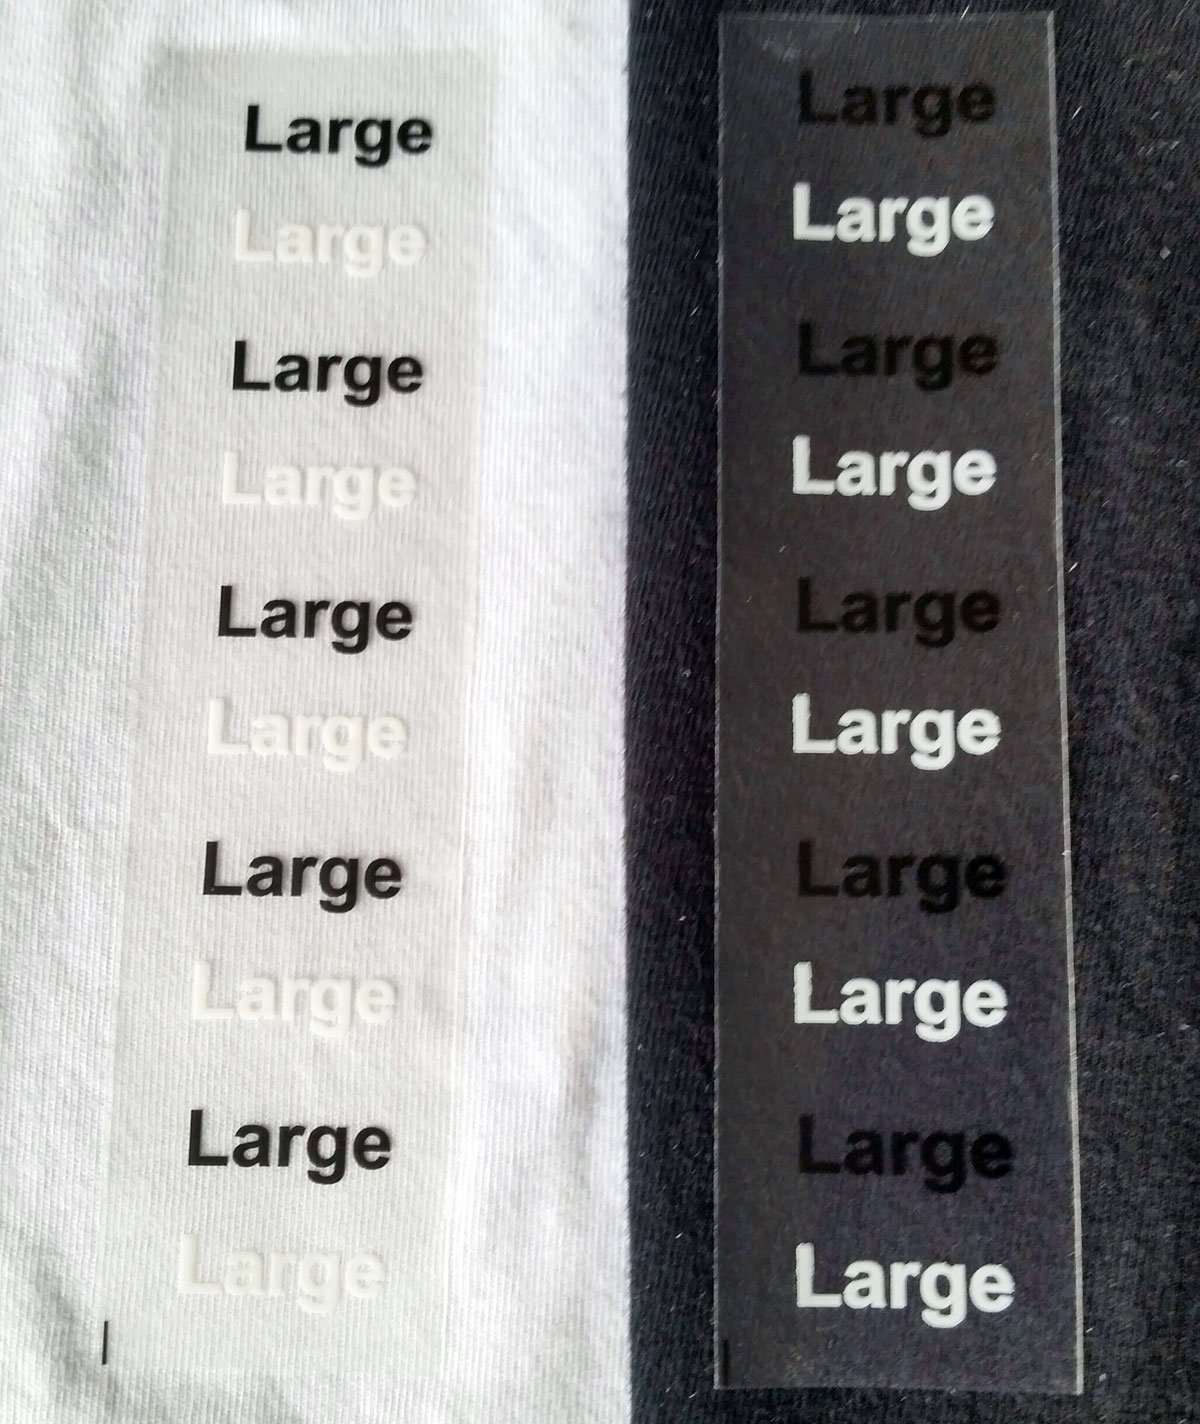 Large Modern Style Clear Clothing Size Stickers For Retail Store Supplies Apparel Safe Adhesive Size Labels For Clothing 125 Size Labels on A Roll Stick On Clothing Labels